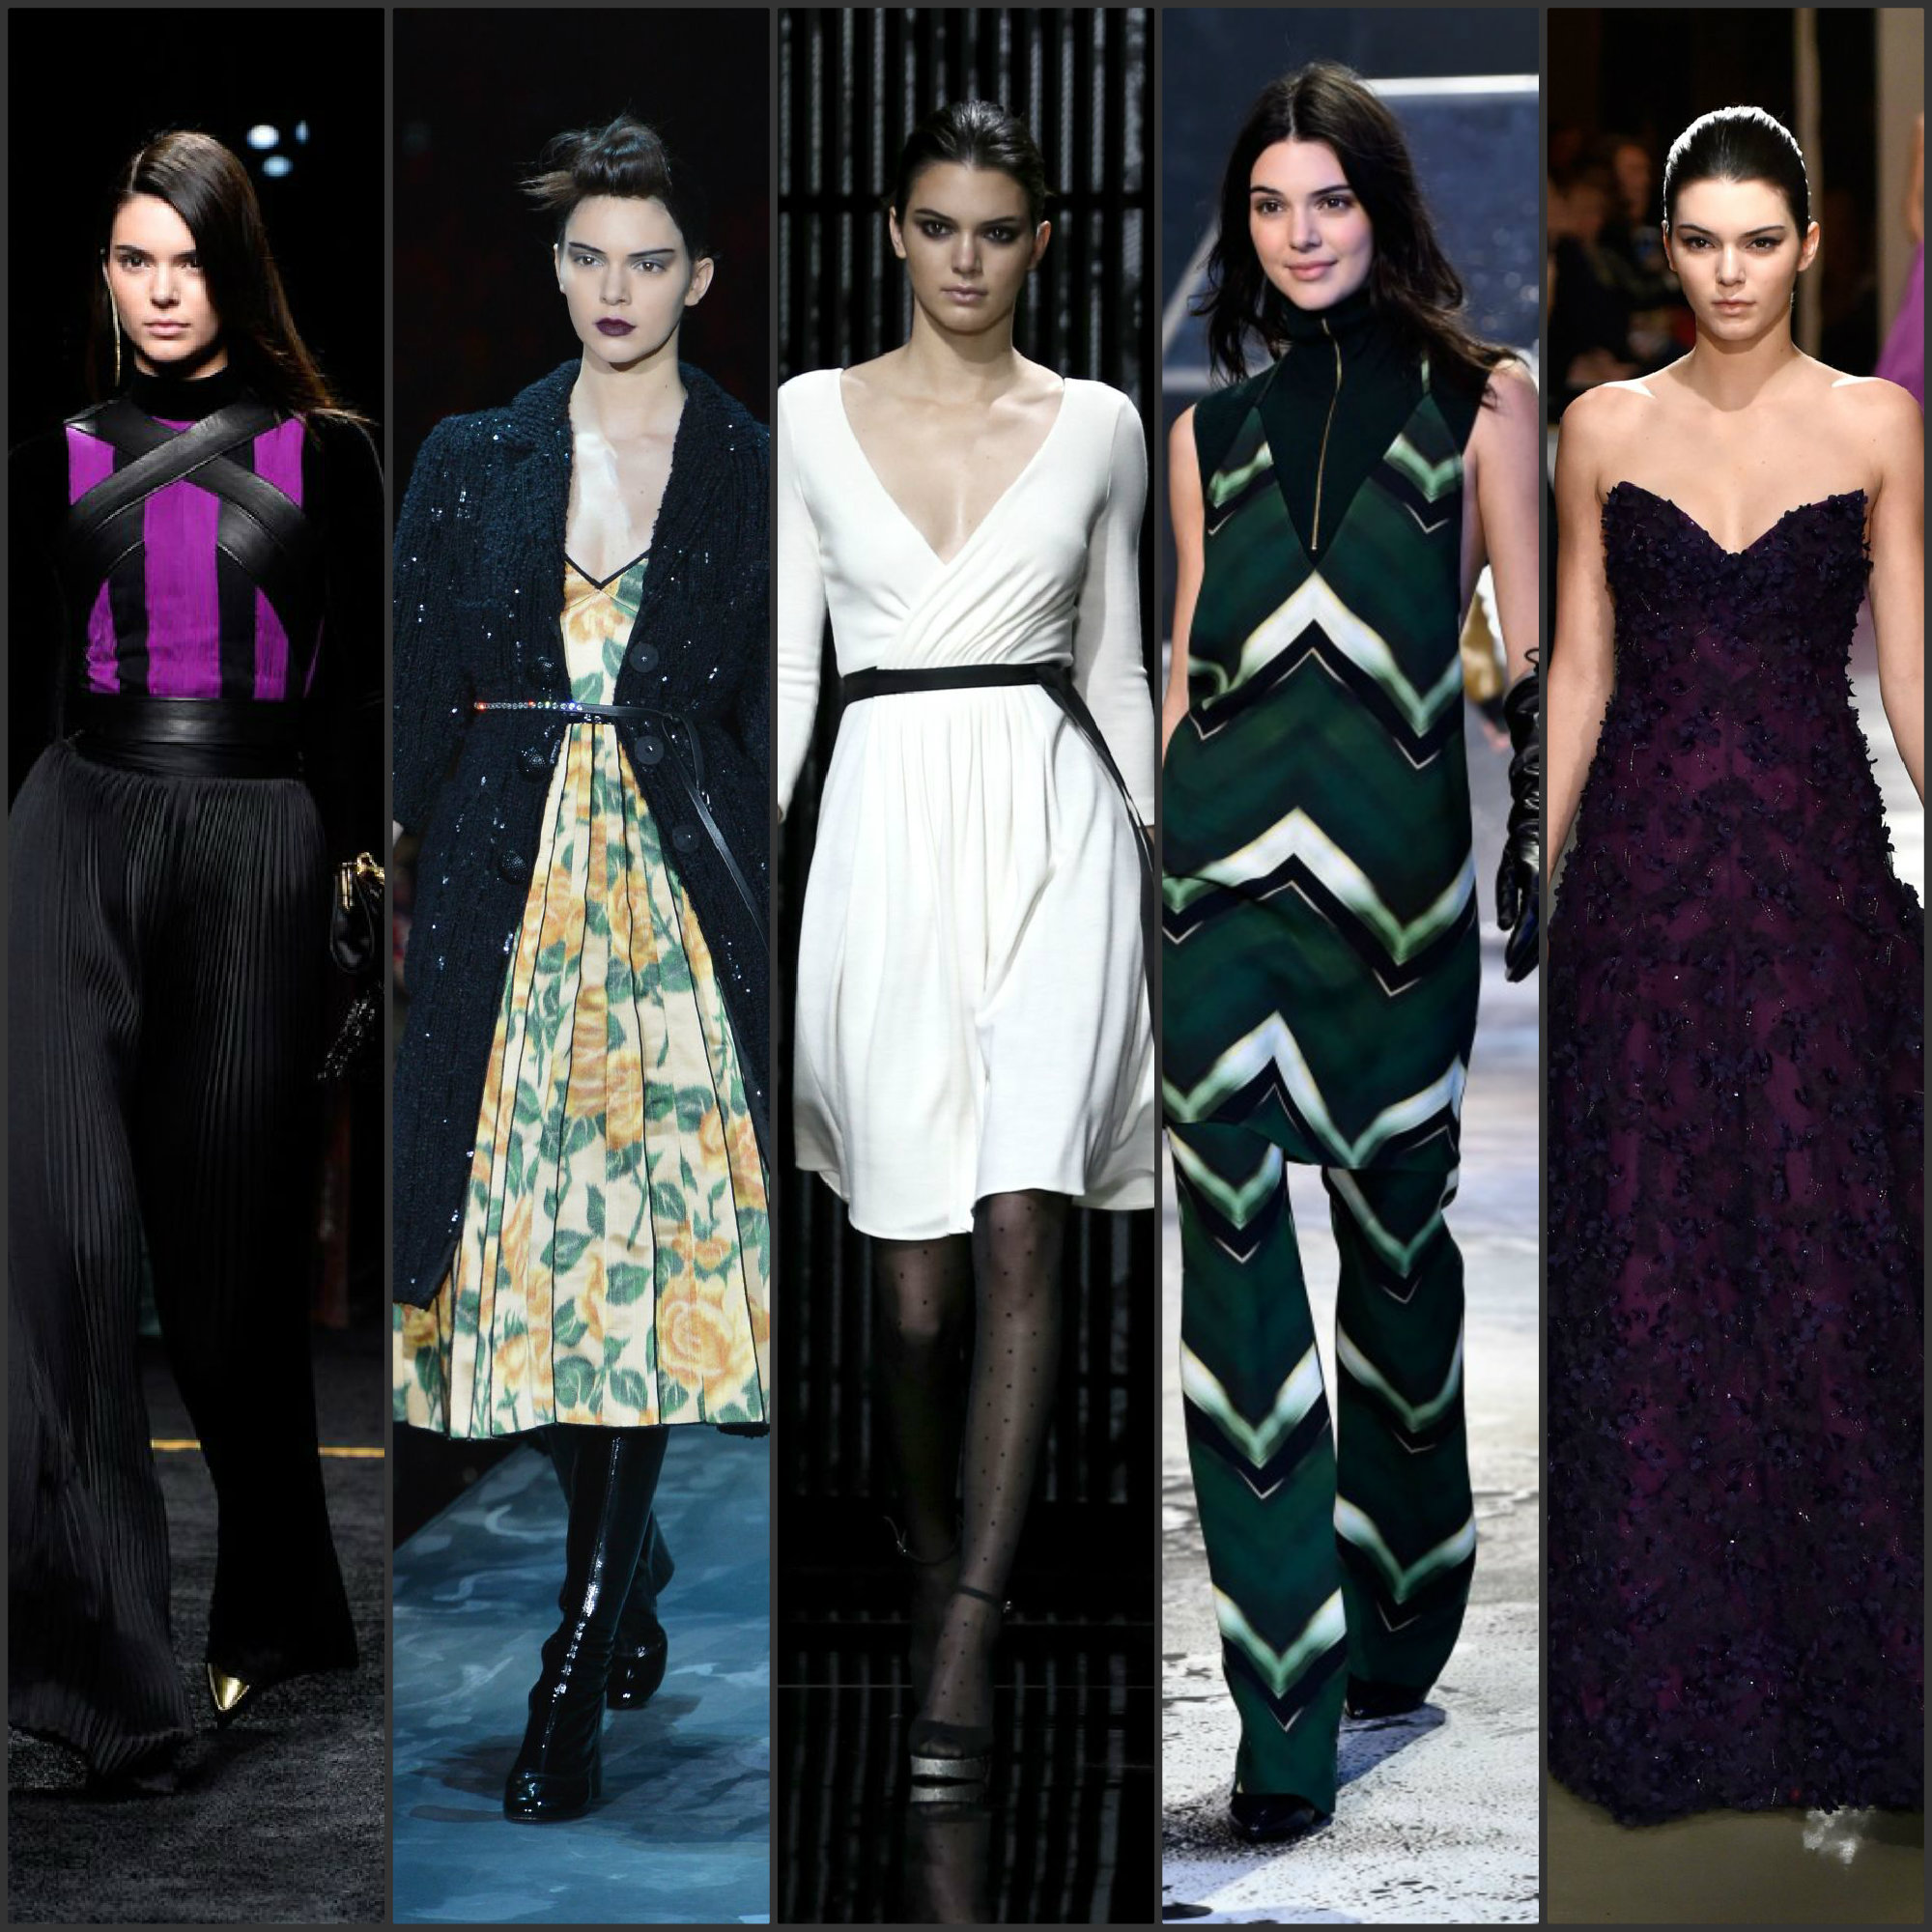 Kendall-Jenner-rocks-the-runway-Fashion-Week-2015